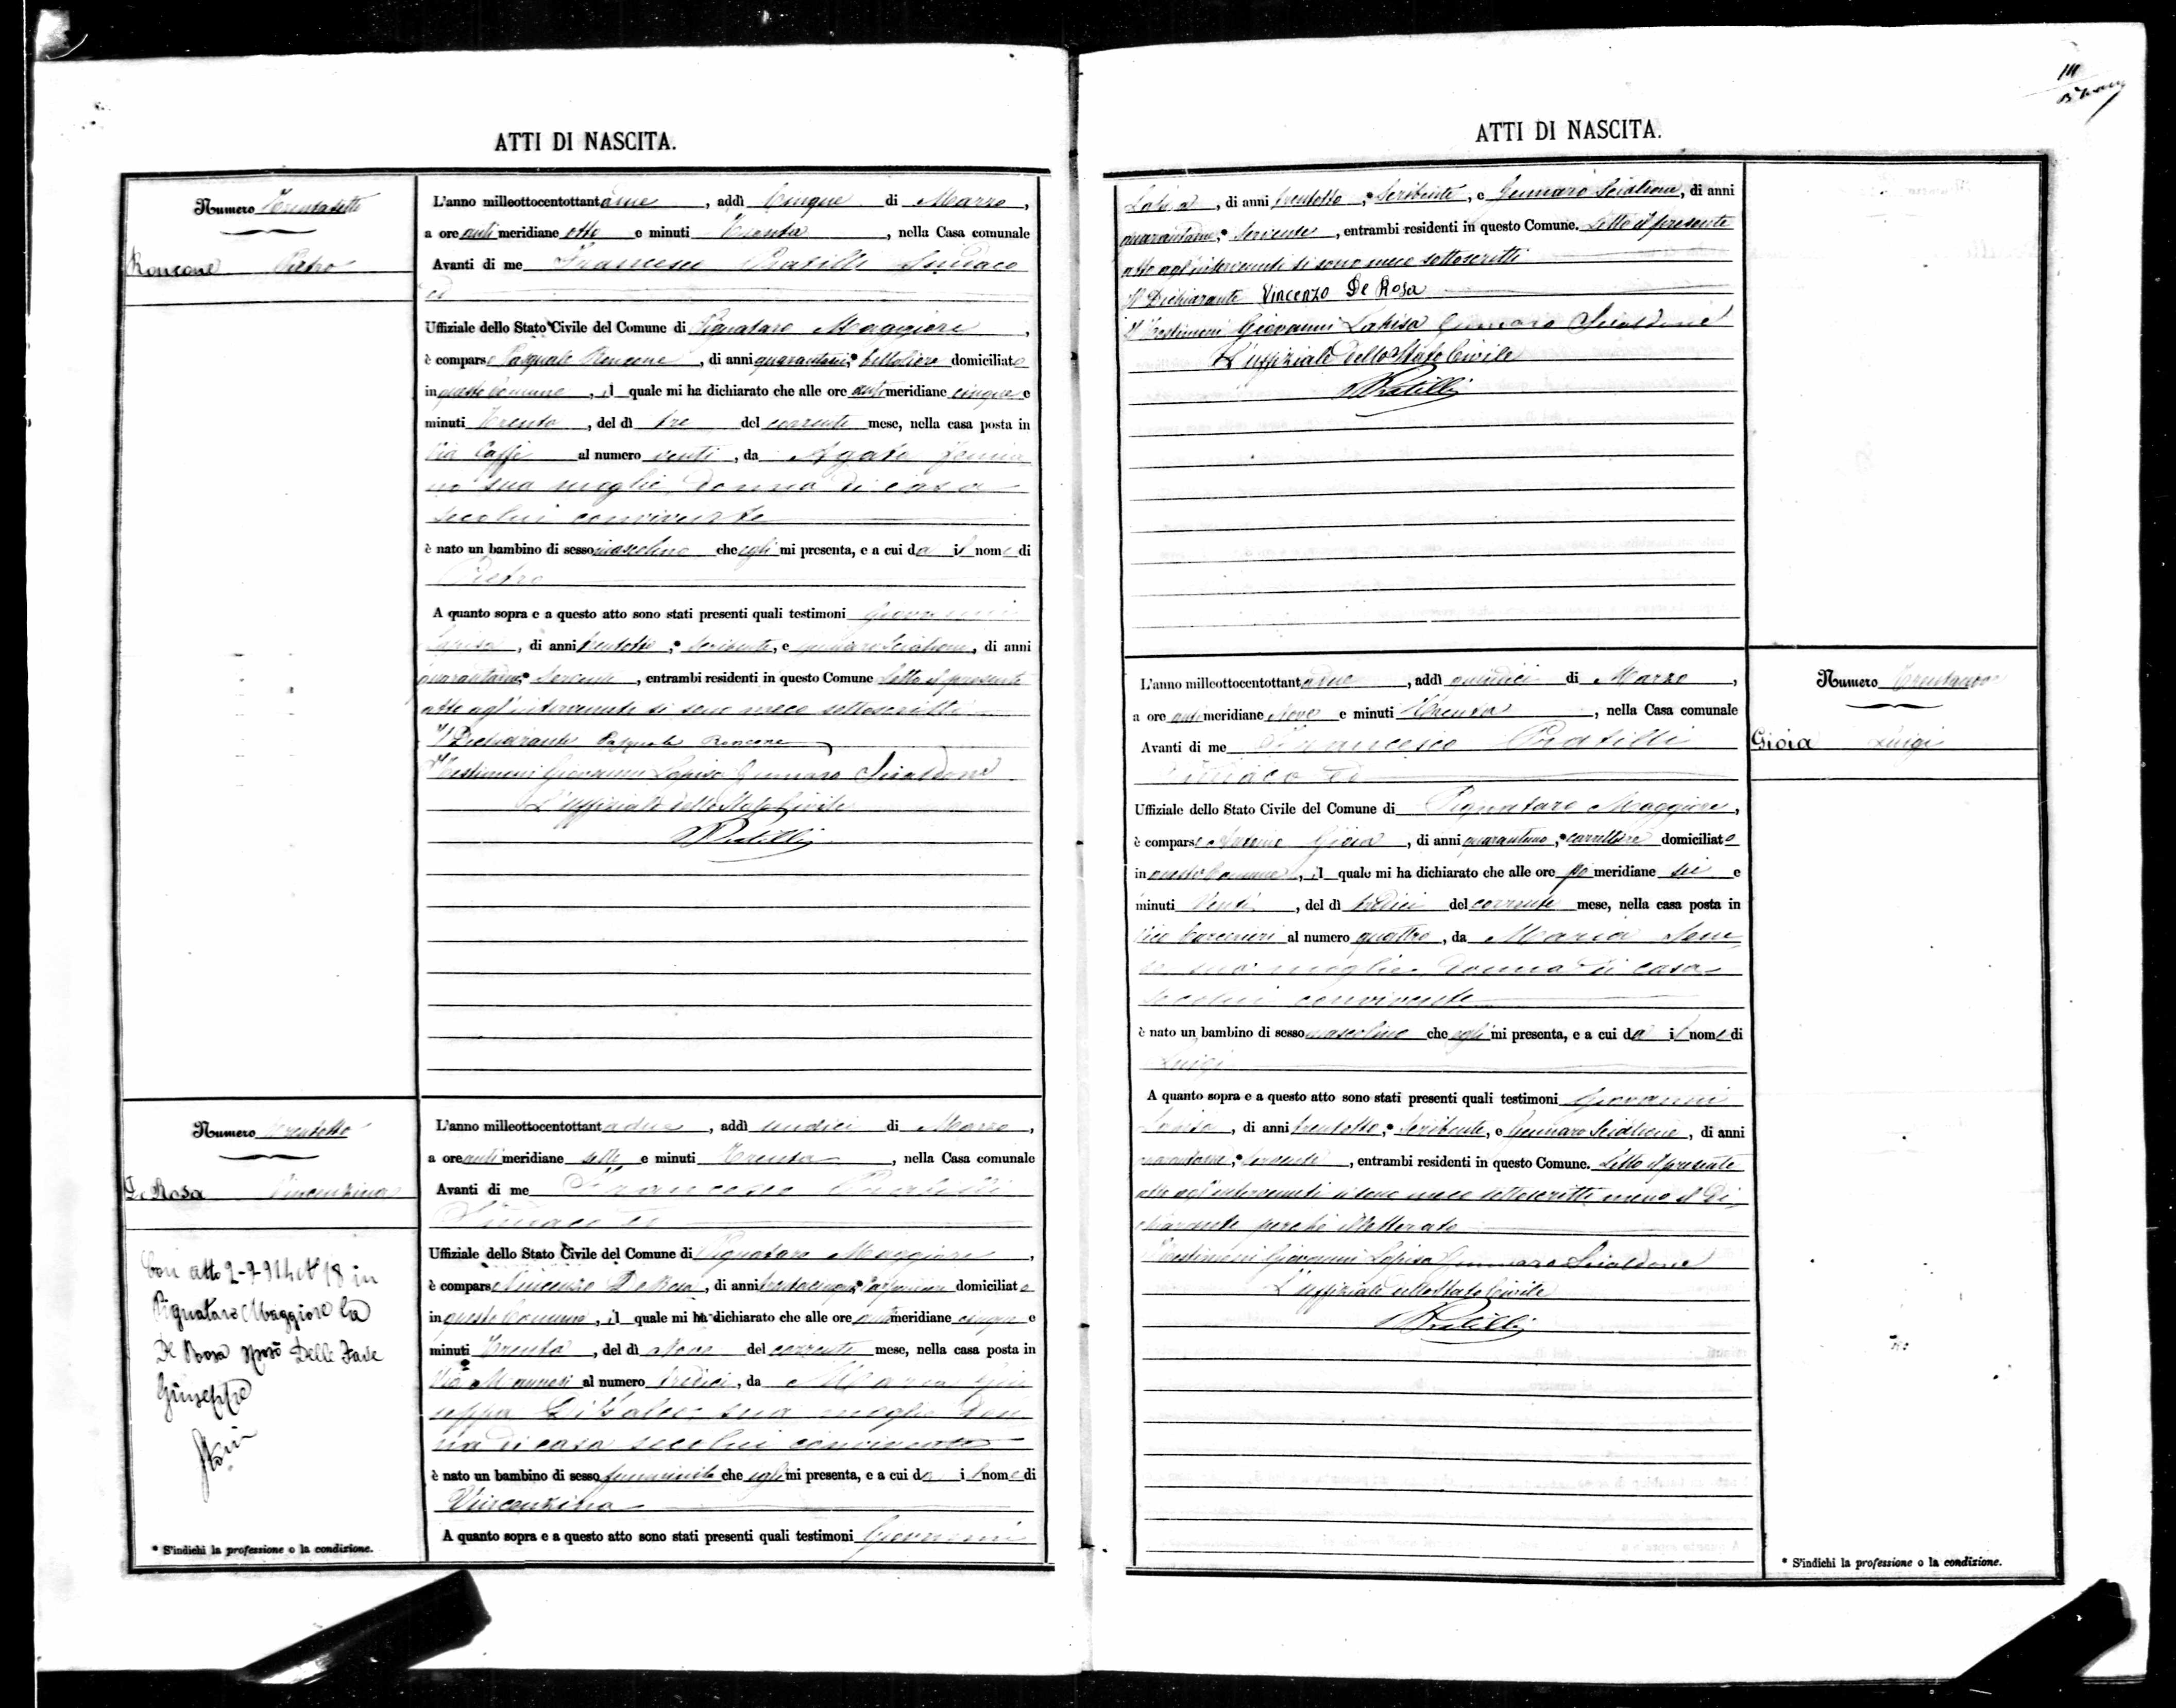 Pietro Roncone Birth Record 1882.jpg